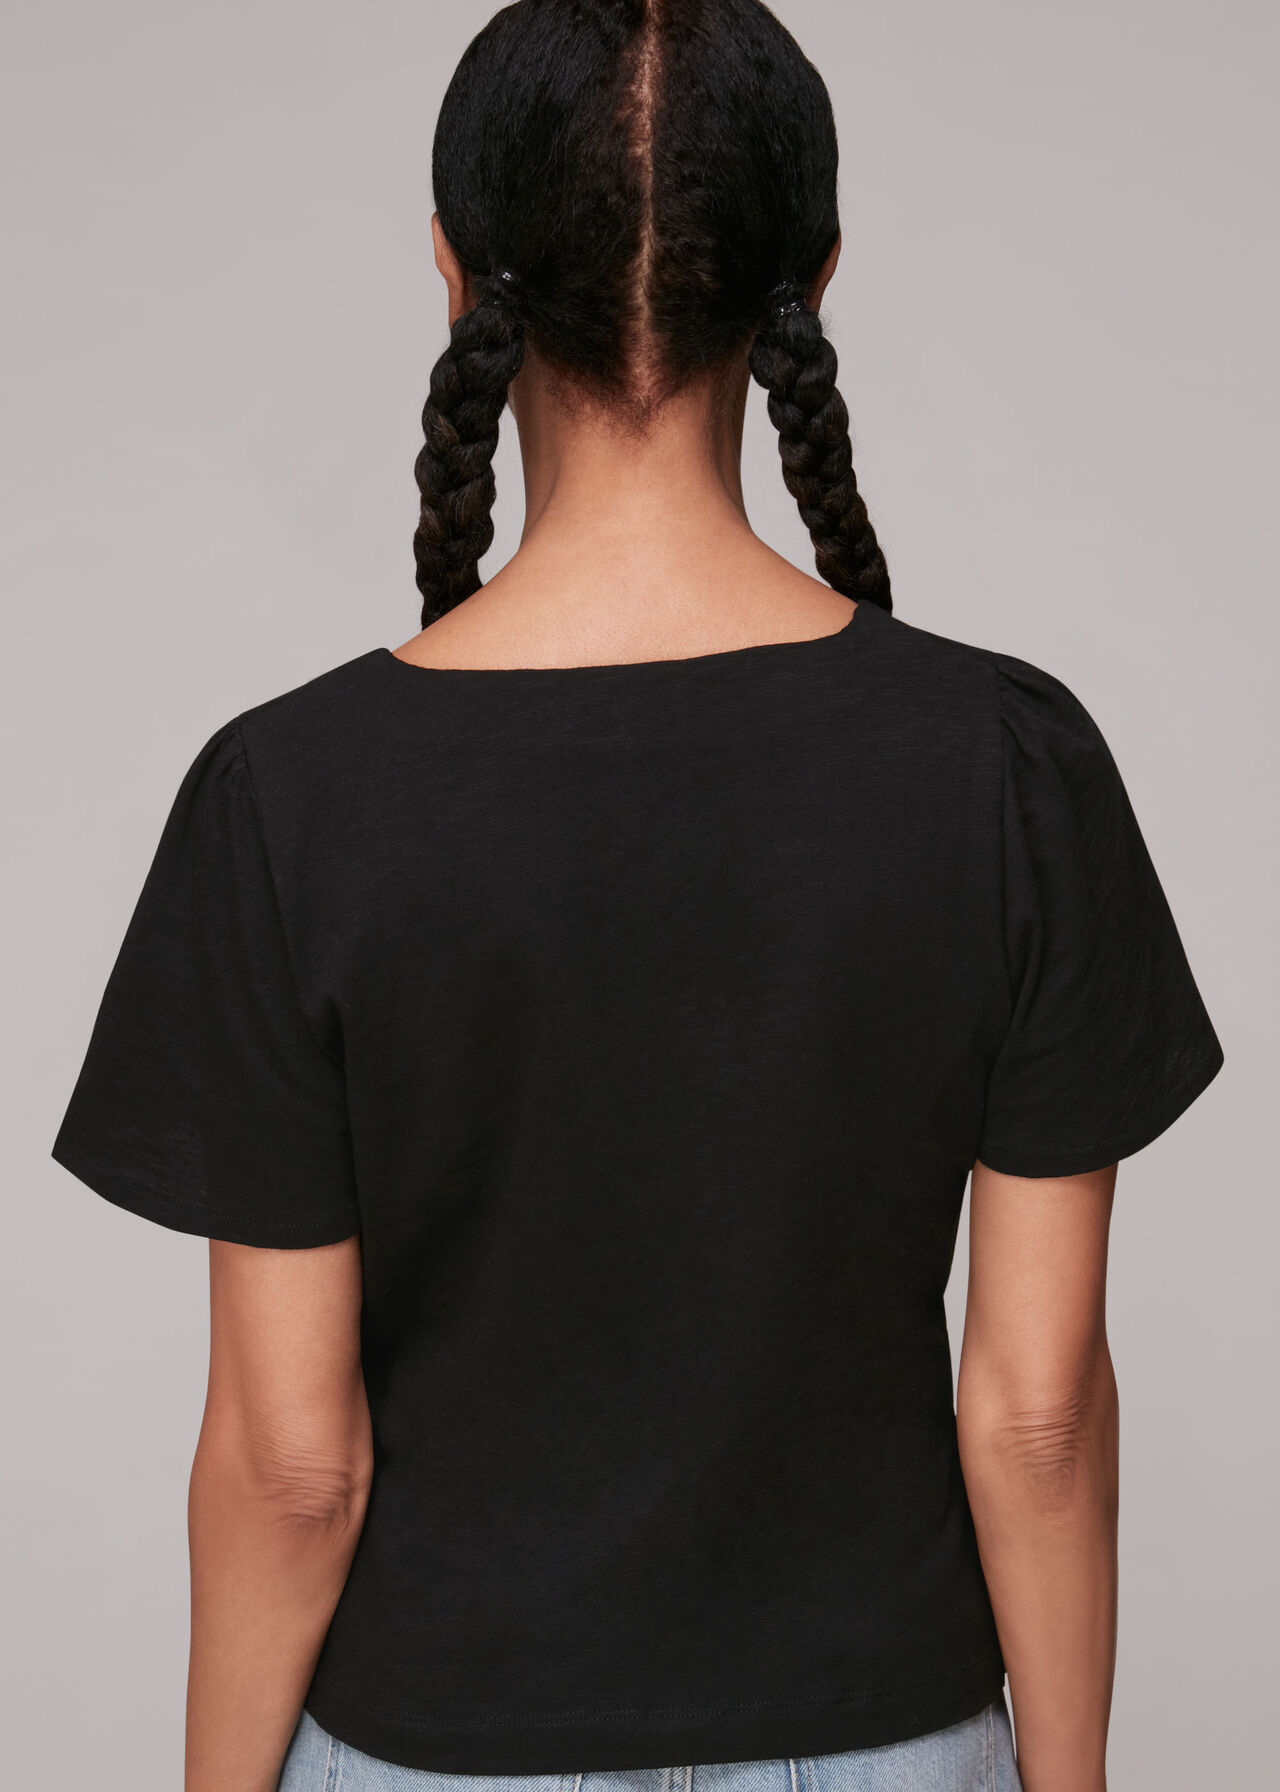 Button Front Frill Top Black